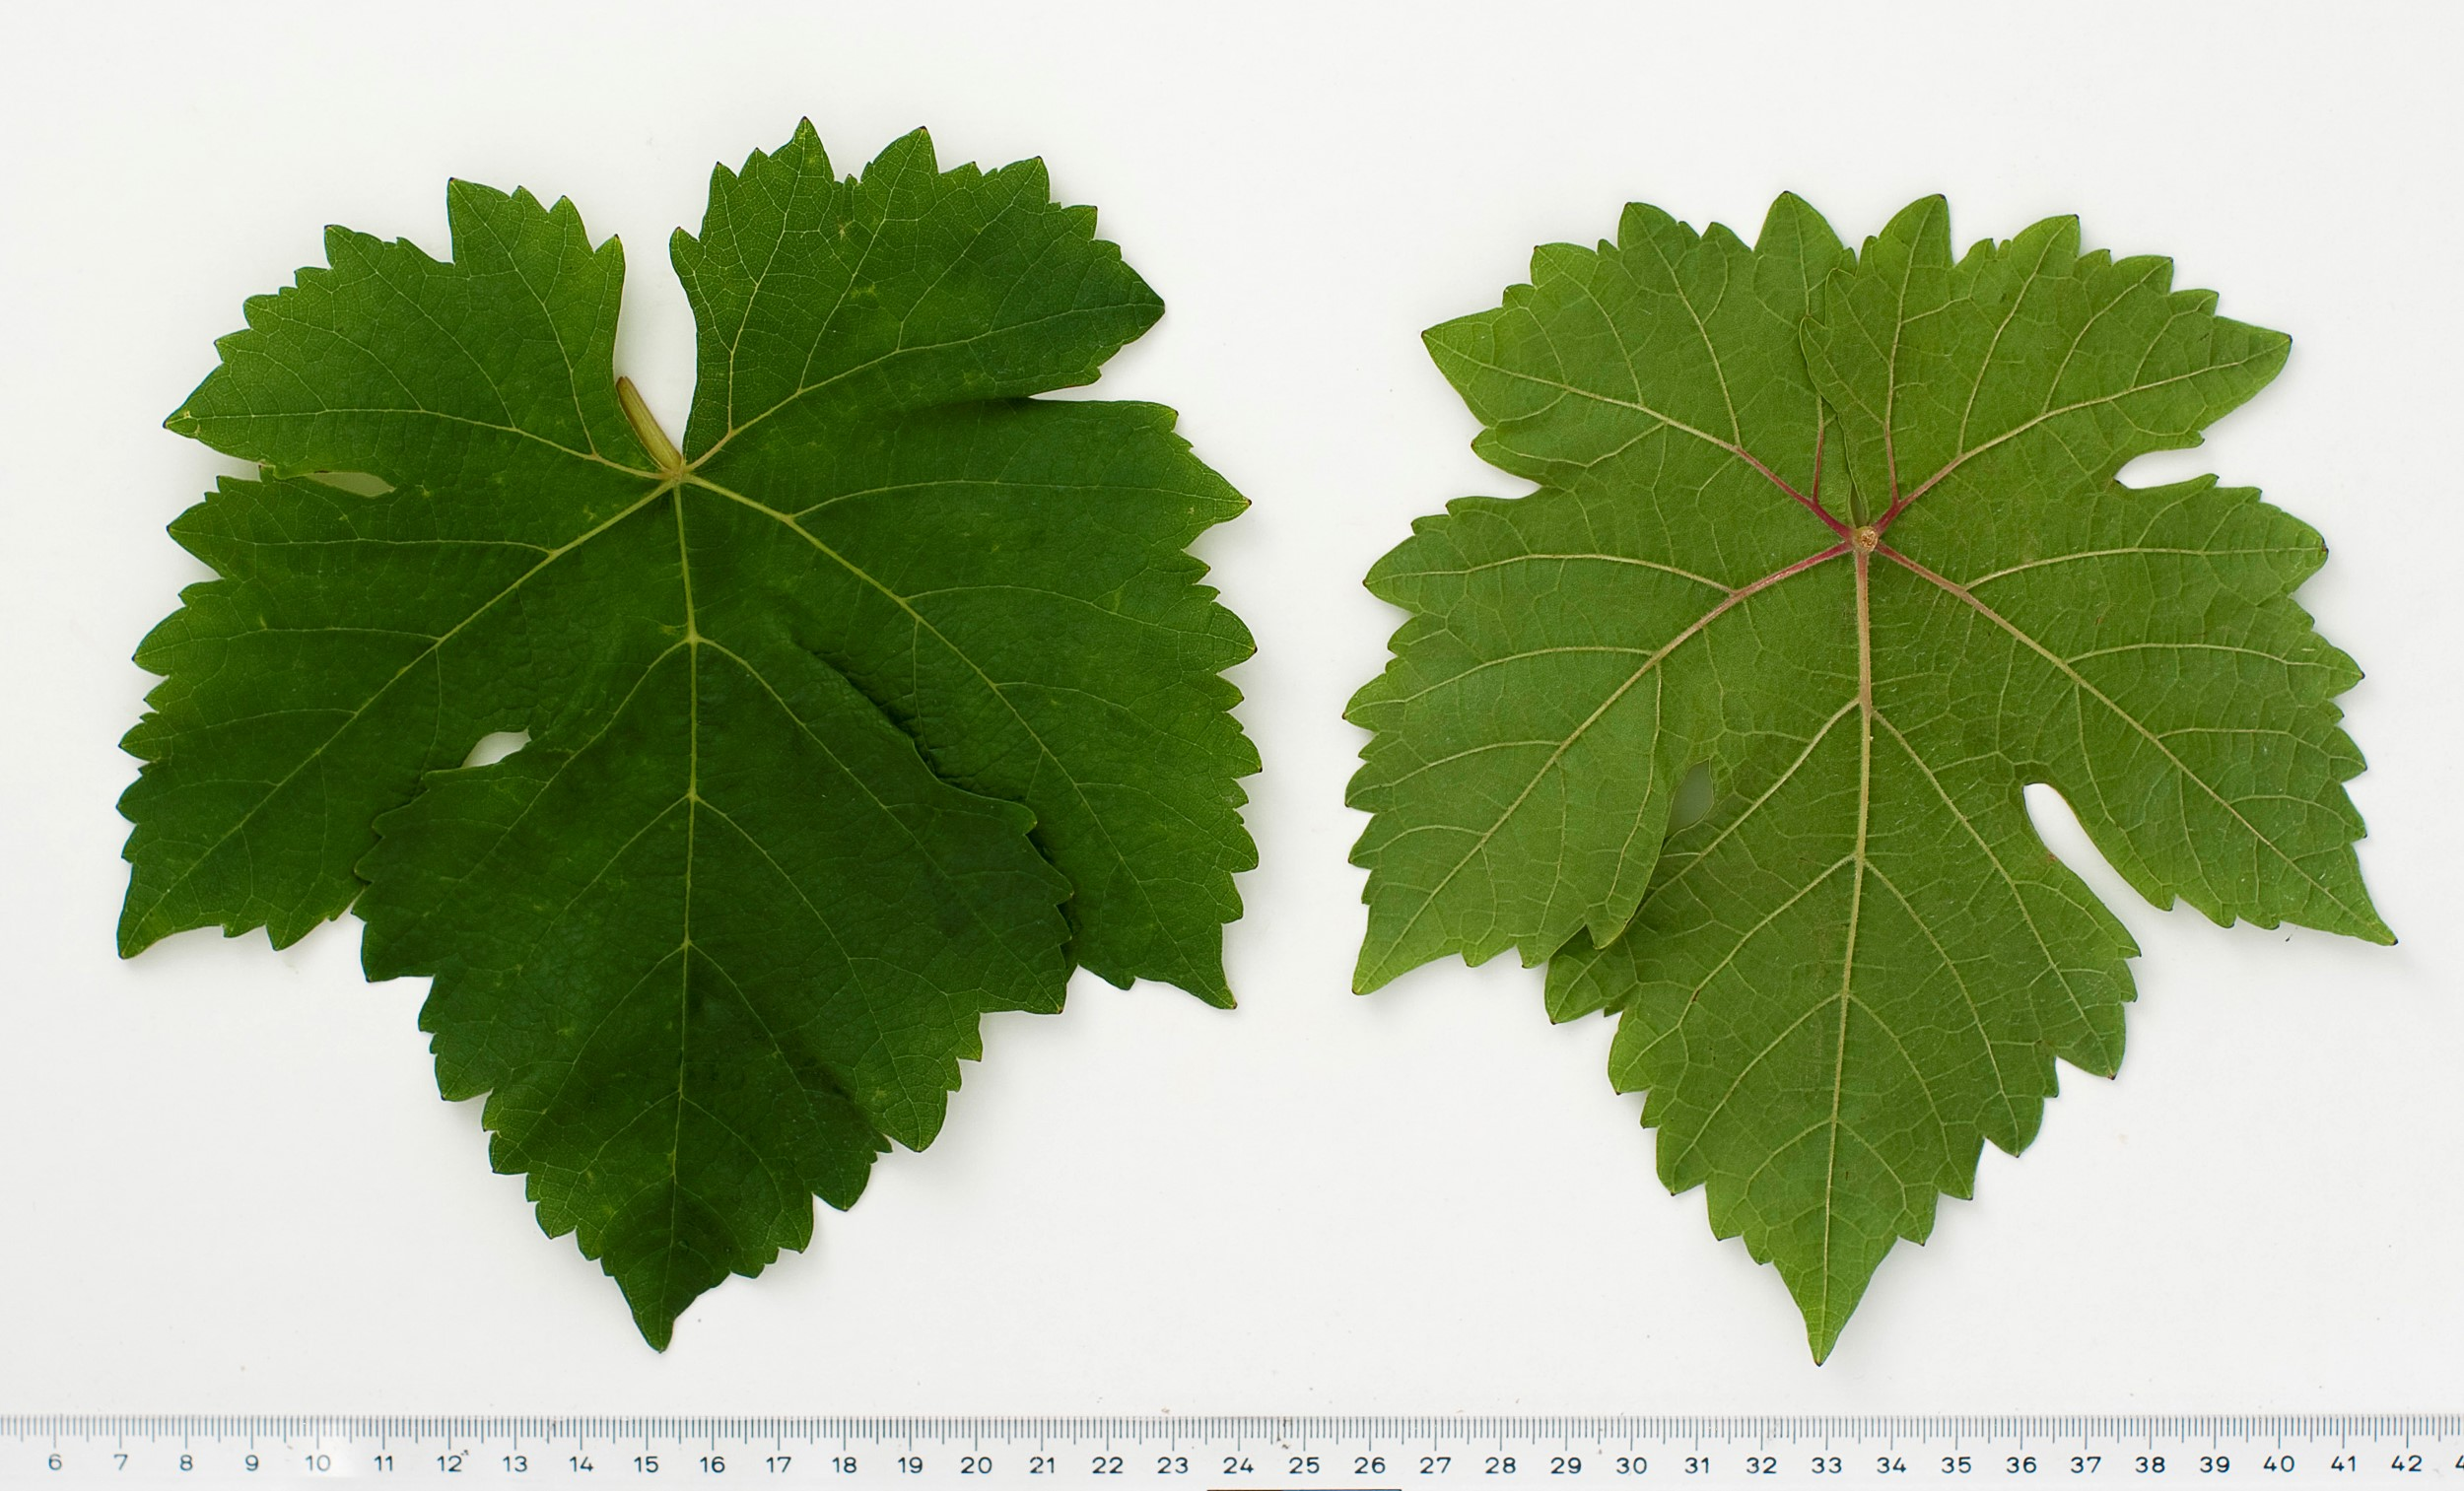 VIVC2493 CHASSELAS ROSE Mature leaf 10127